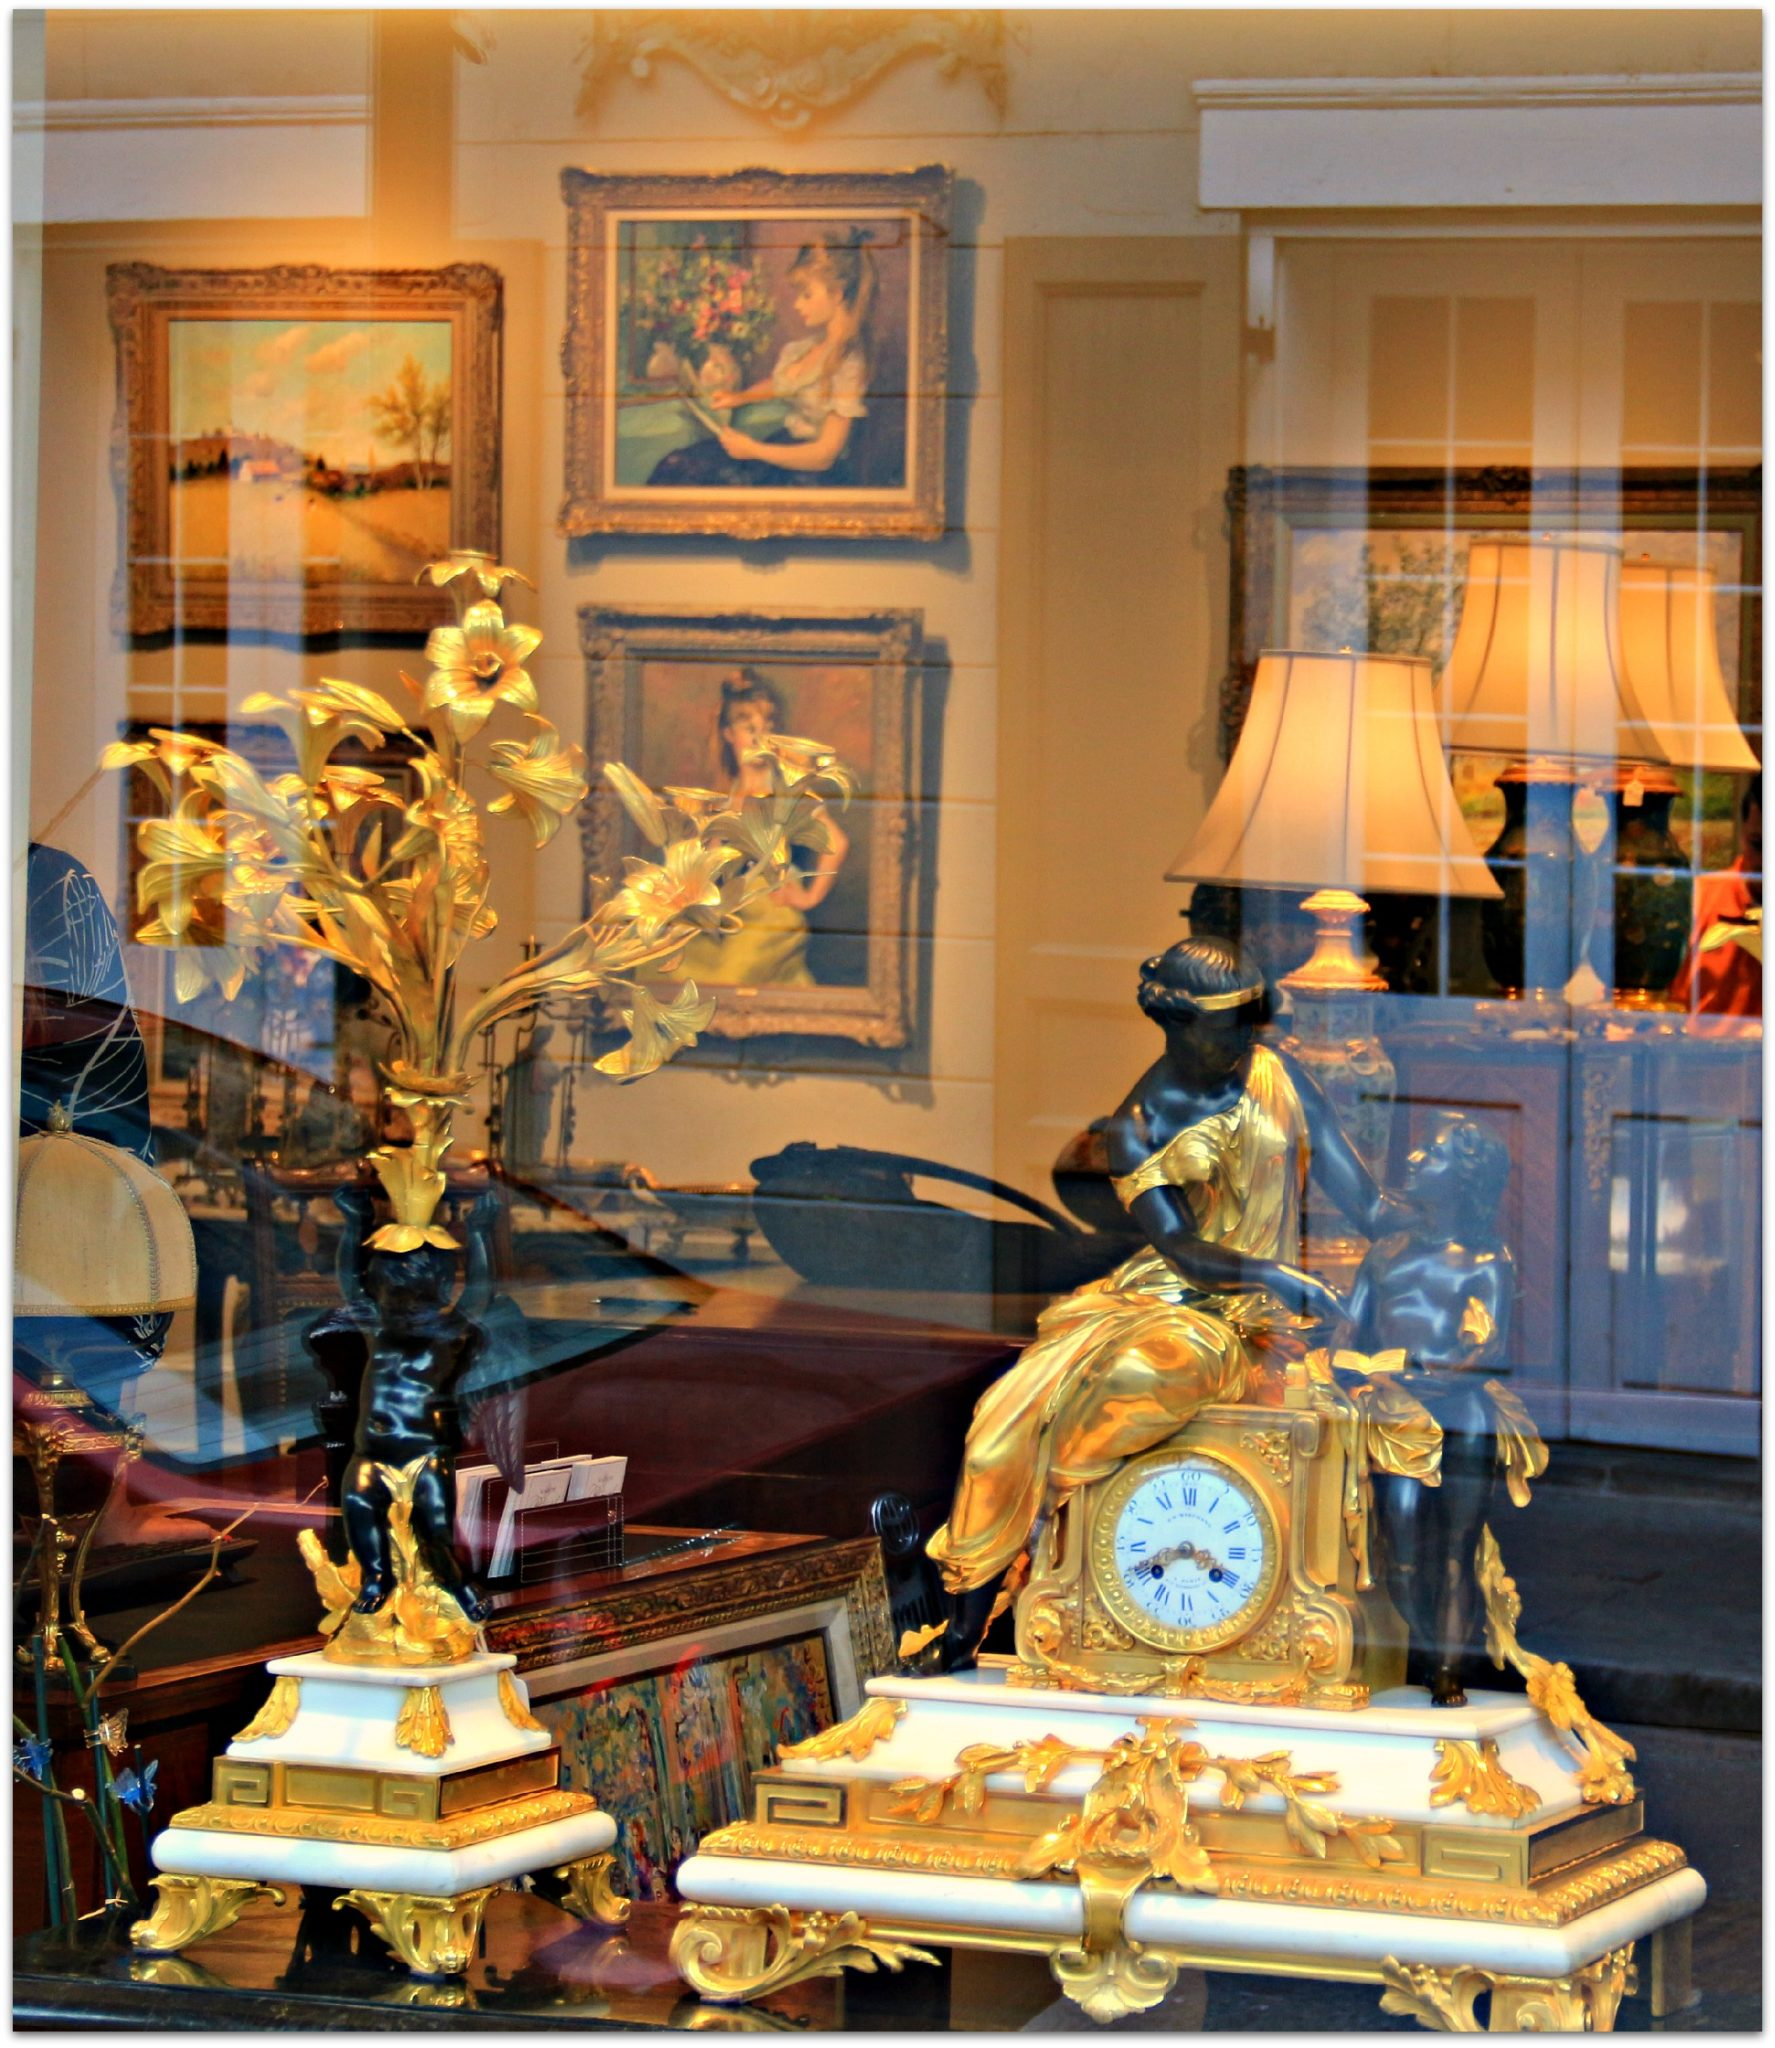 Antiques Shops on Royal Street